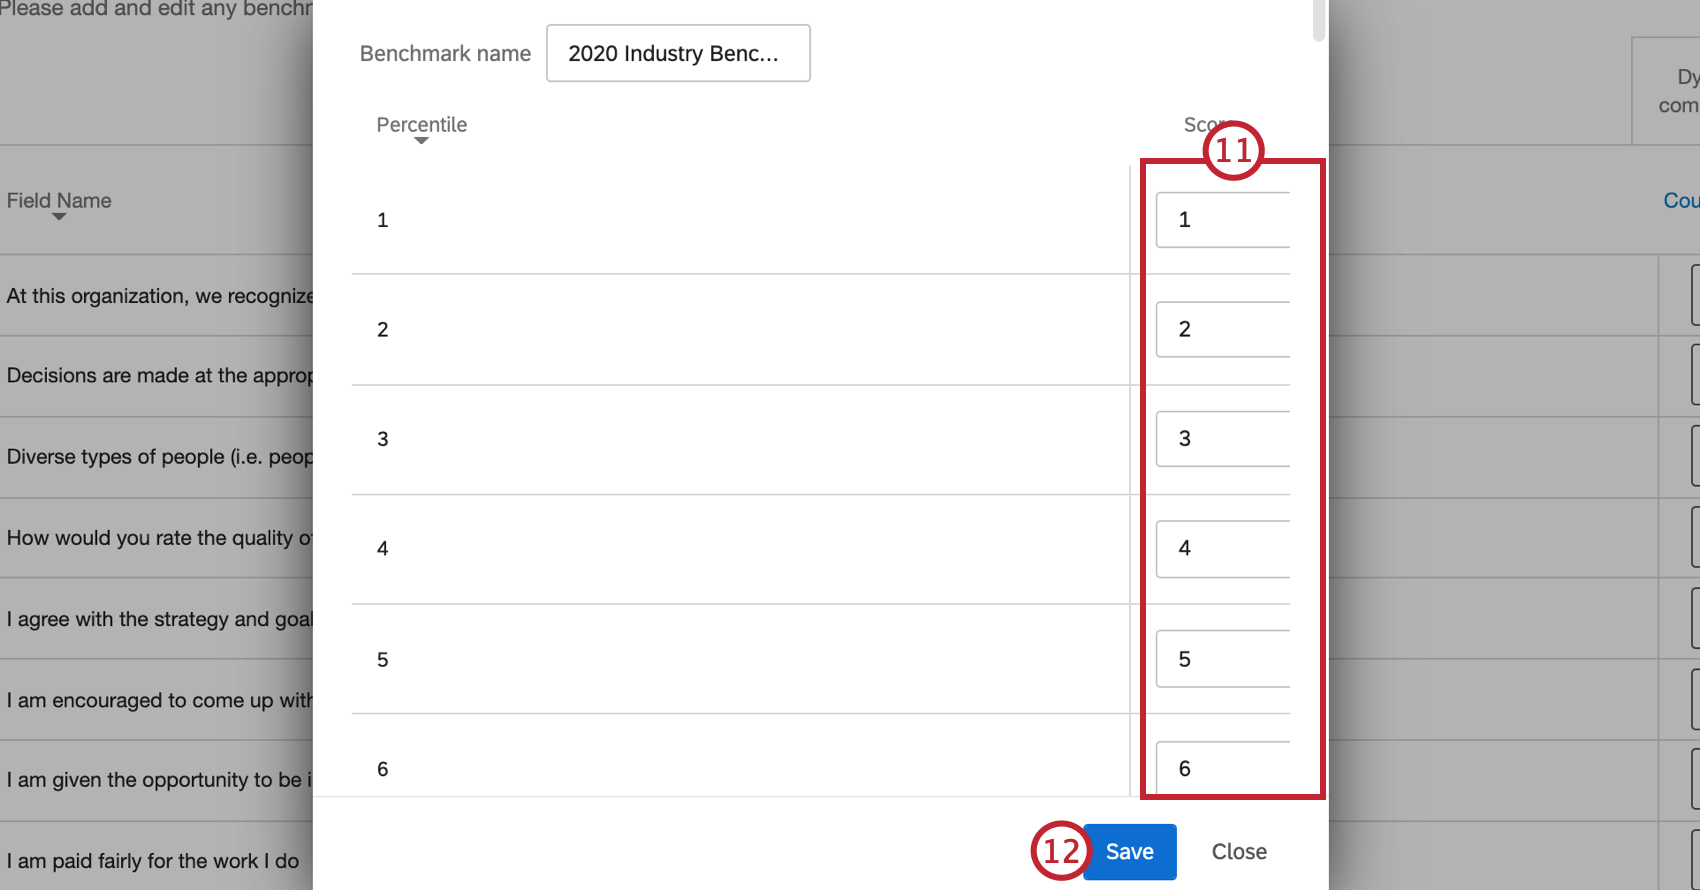 manually entering in values into the boxes, and then clicking save